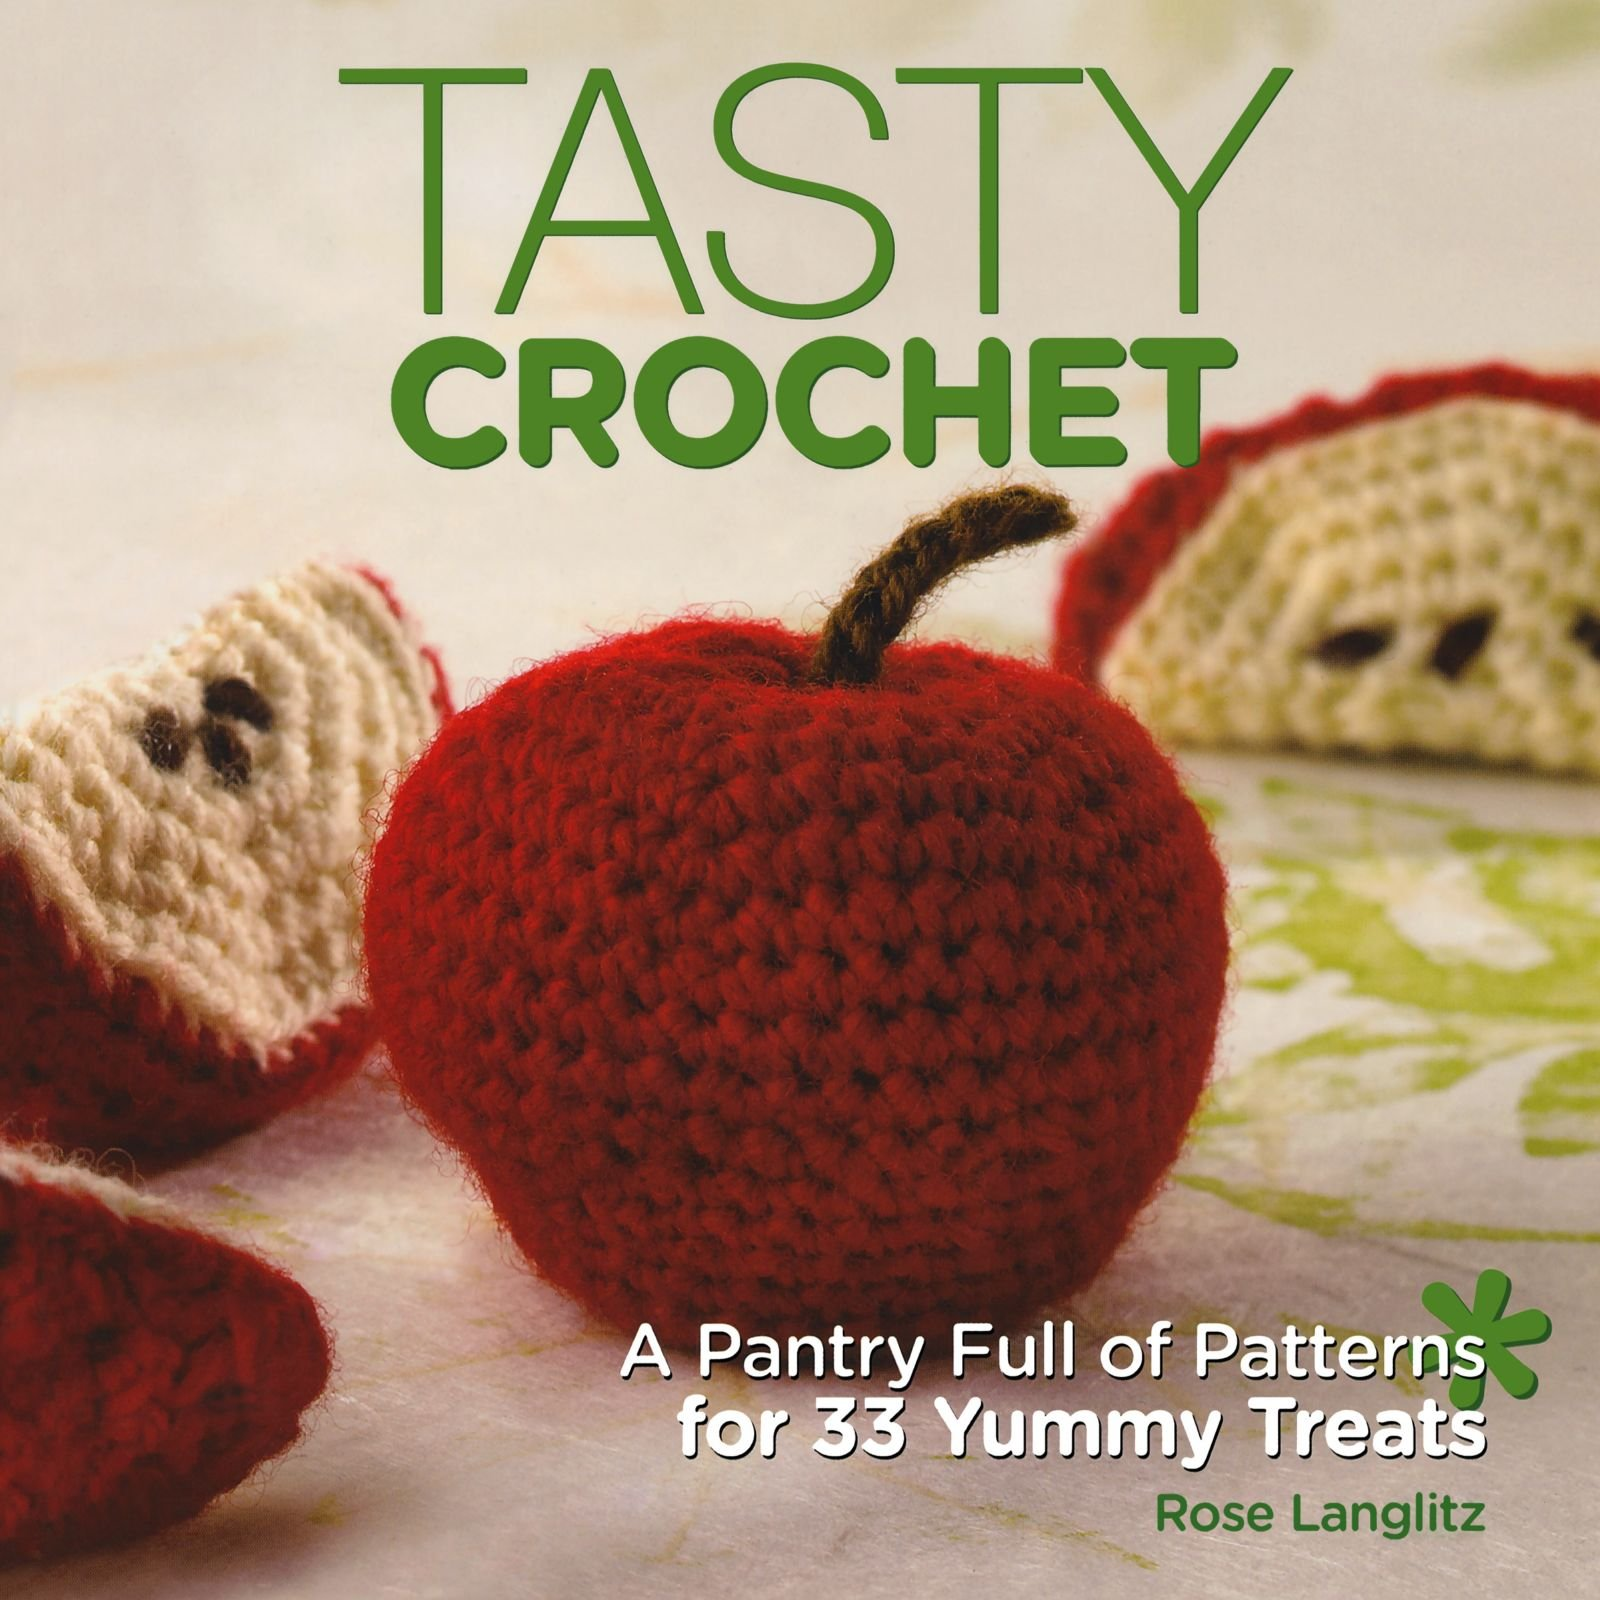 tasty-crochet-a-pantry-full-of-patterns-for-33-tasty-treats